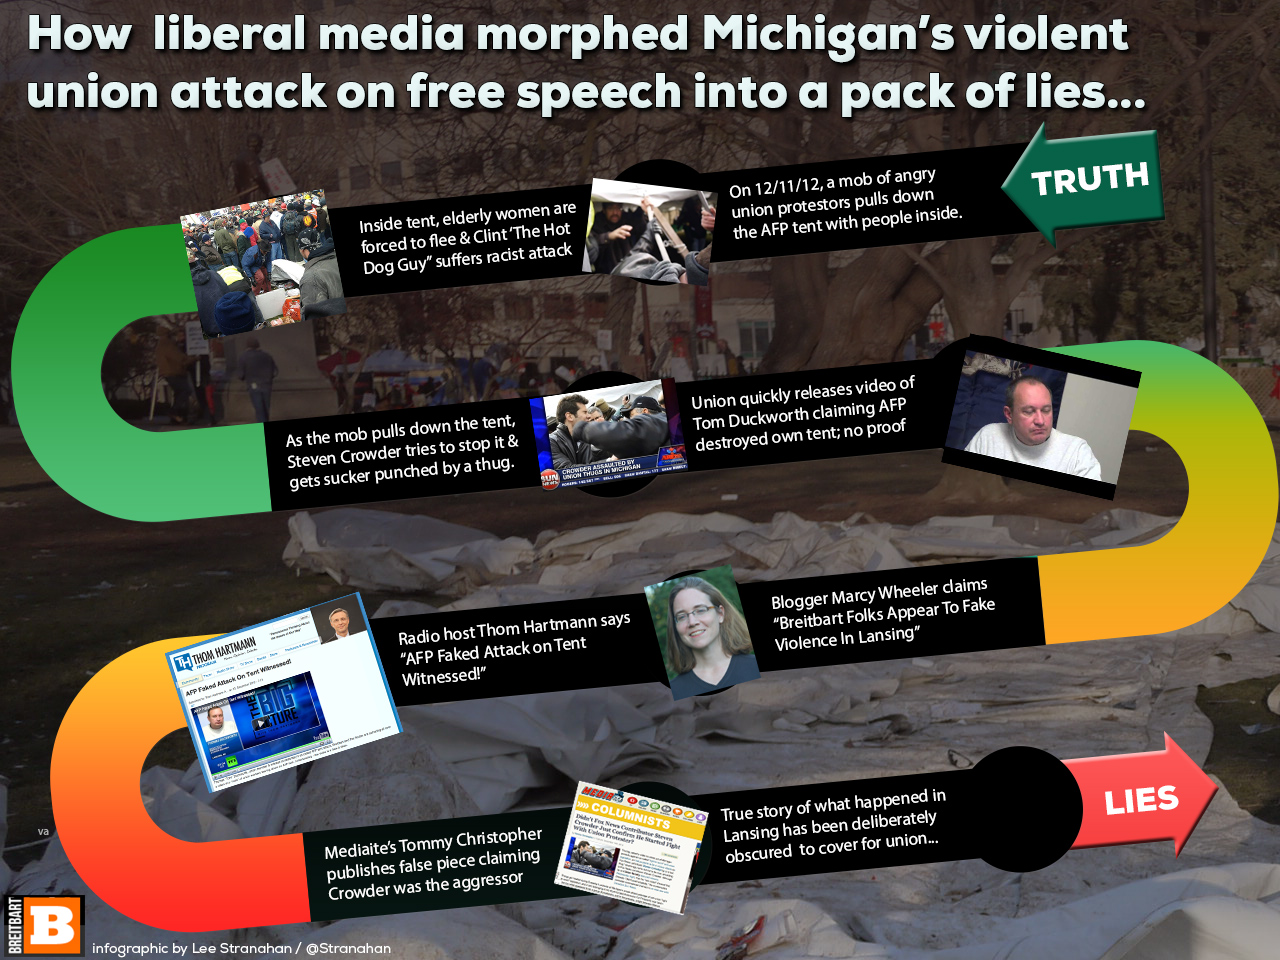 Infographic: Media Morphing Union Mob Violence Into Pack of Lies